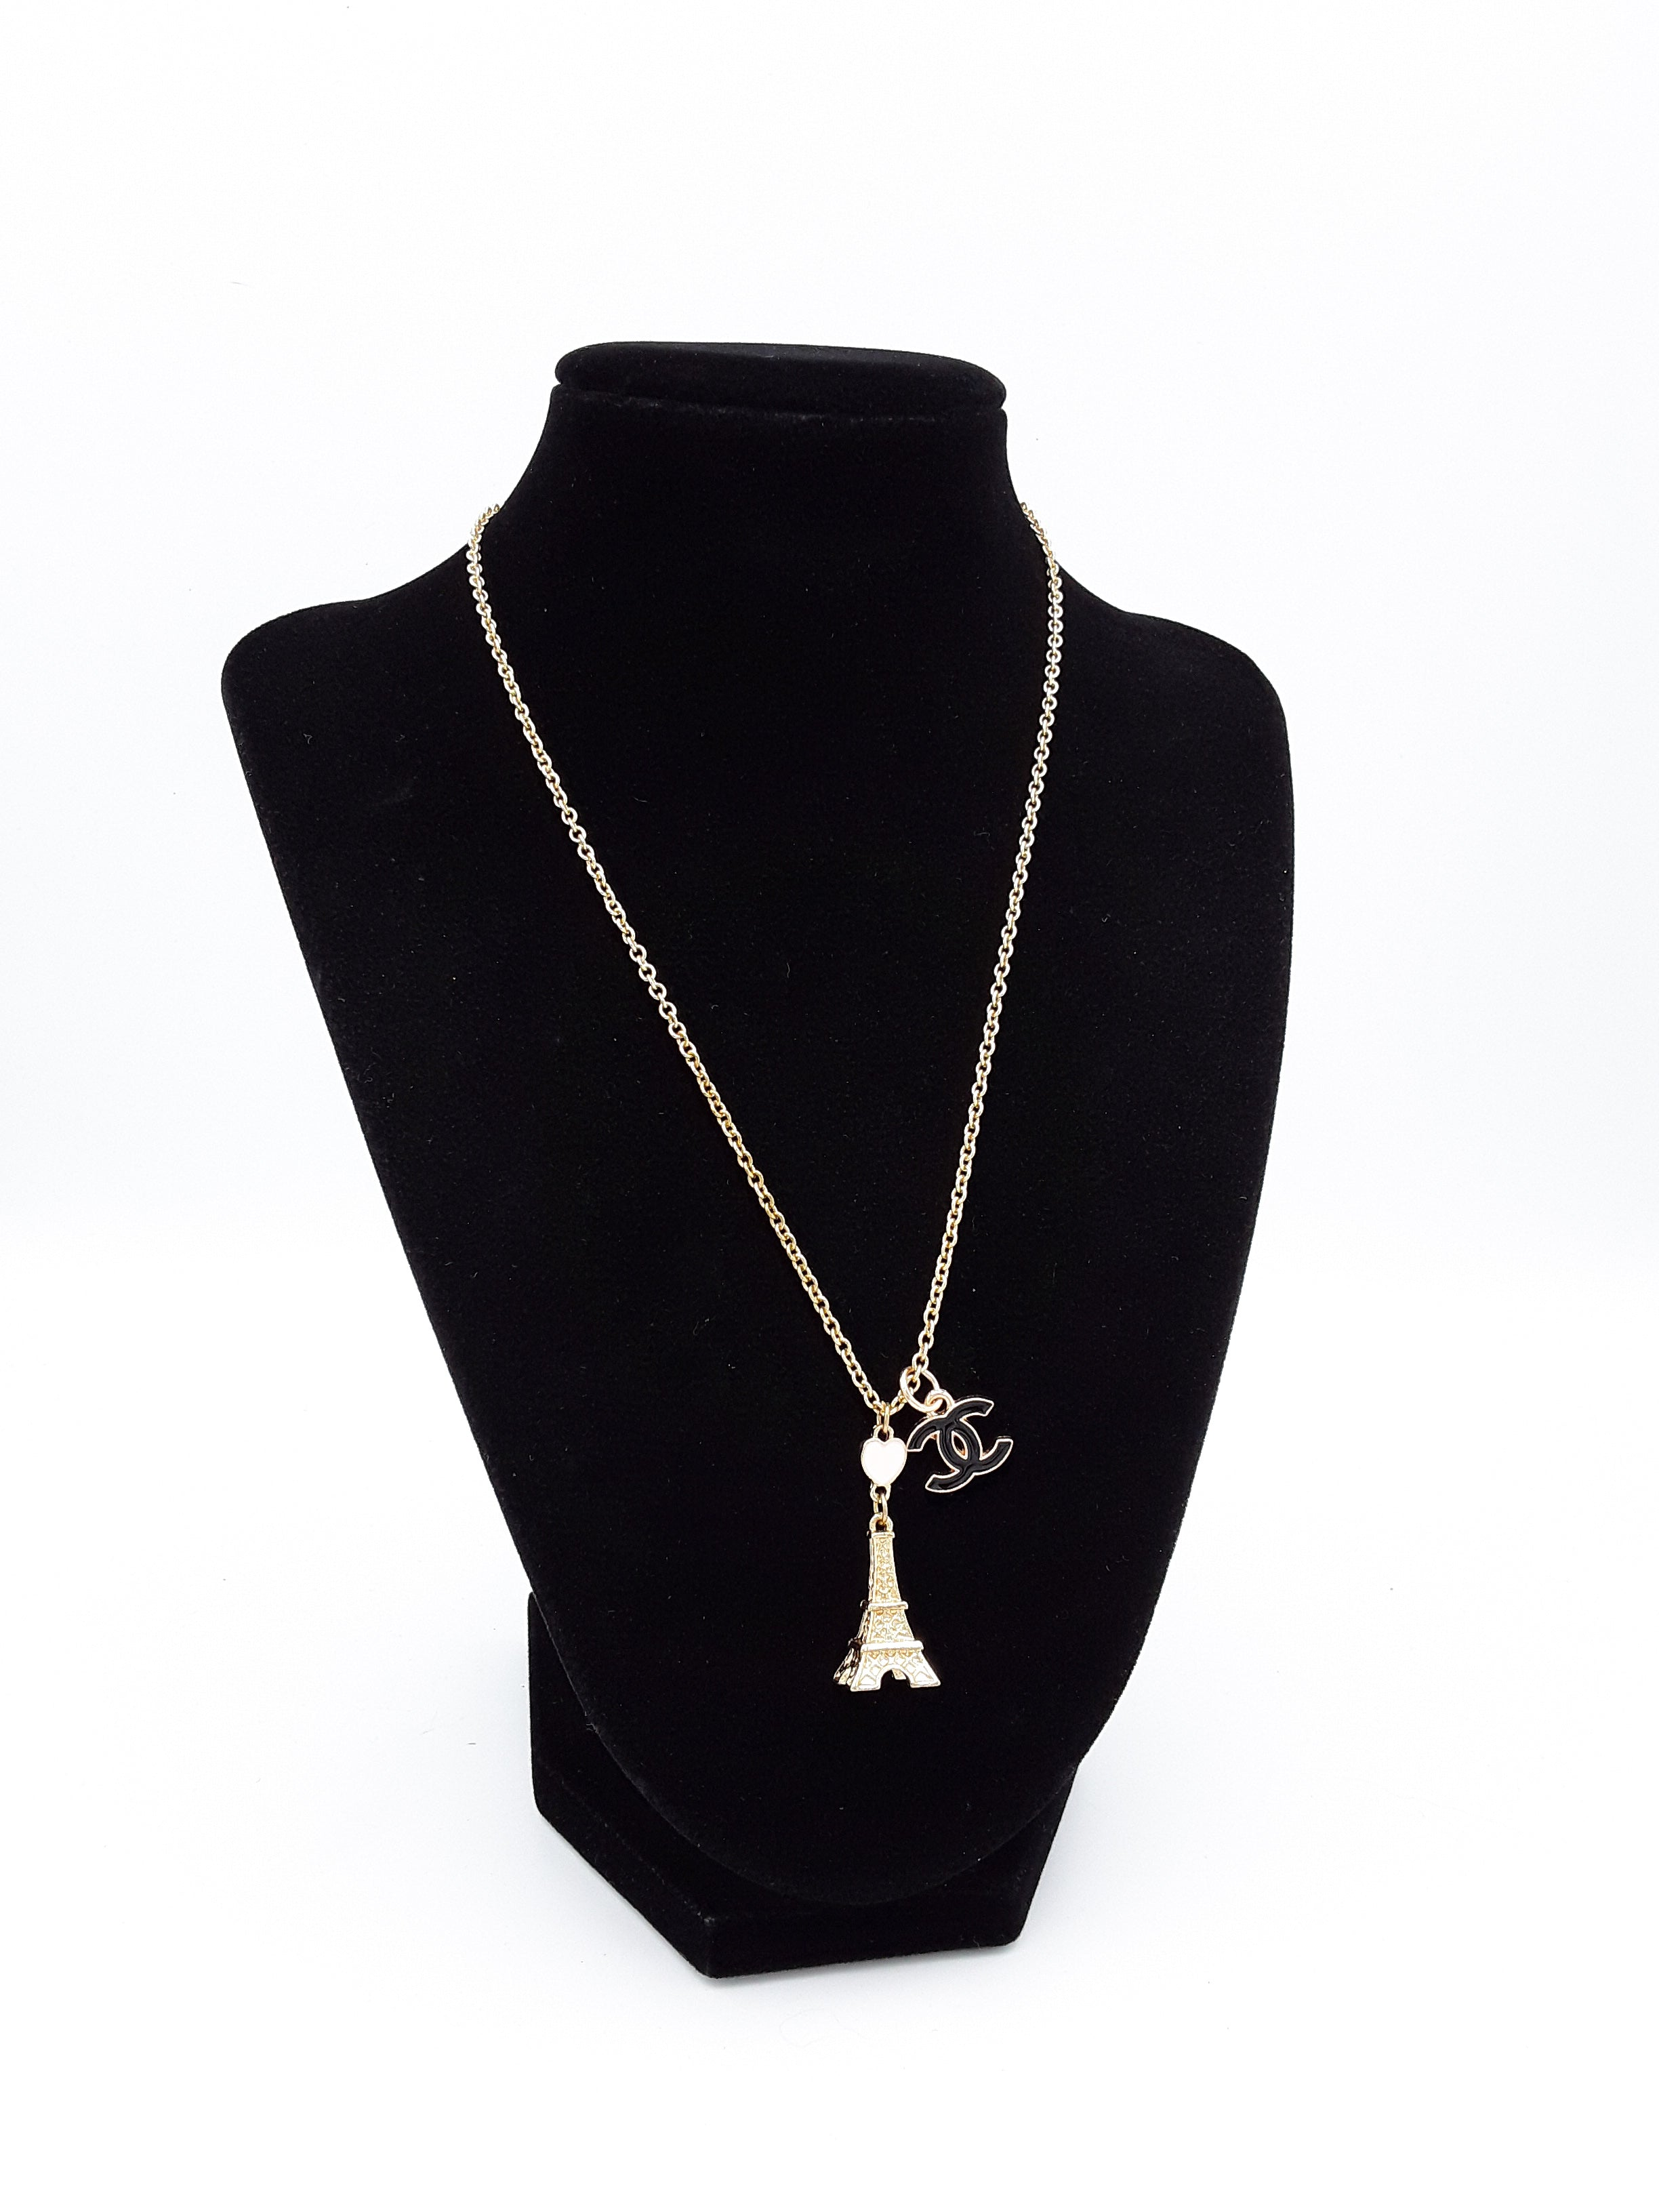 Paris Designer Necklace by Designer Therapy